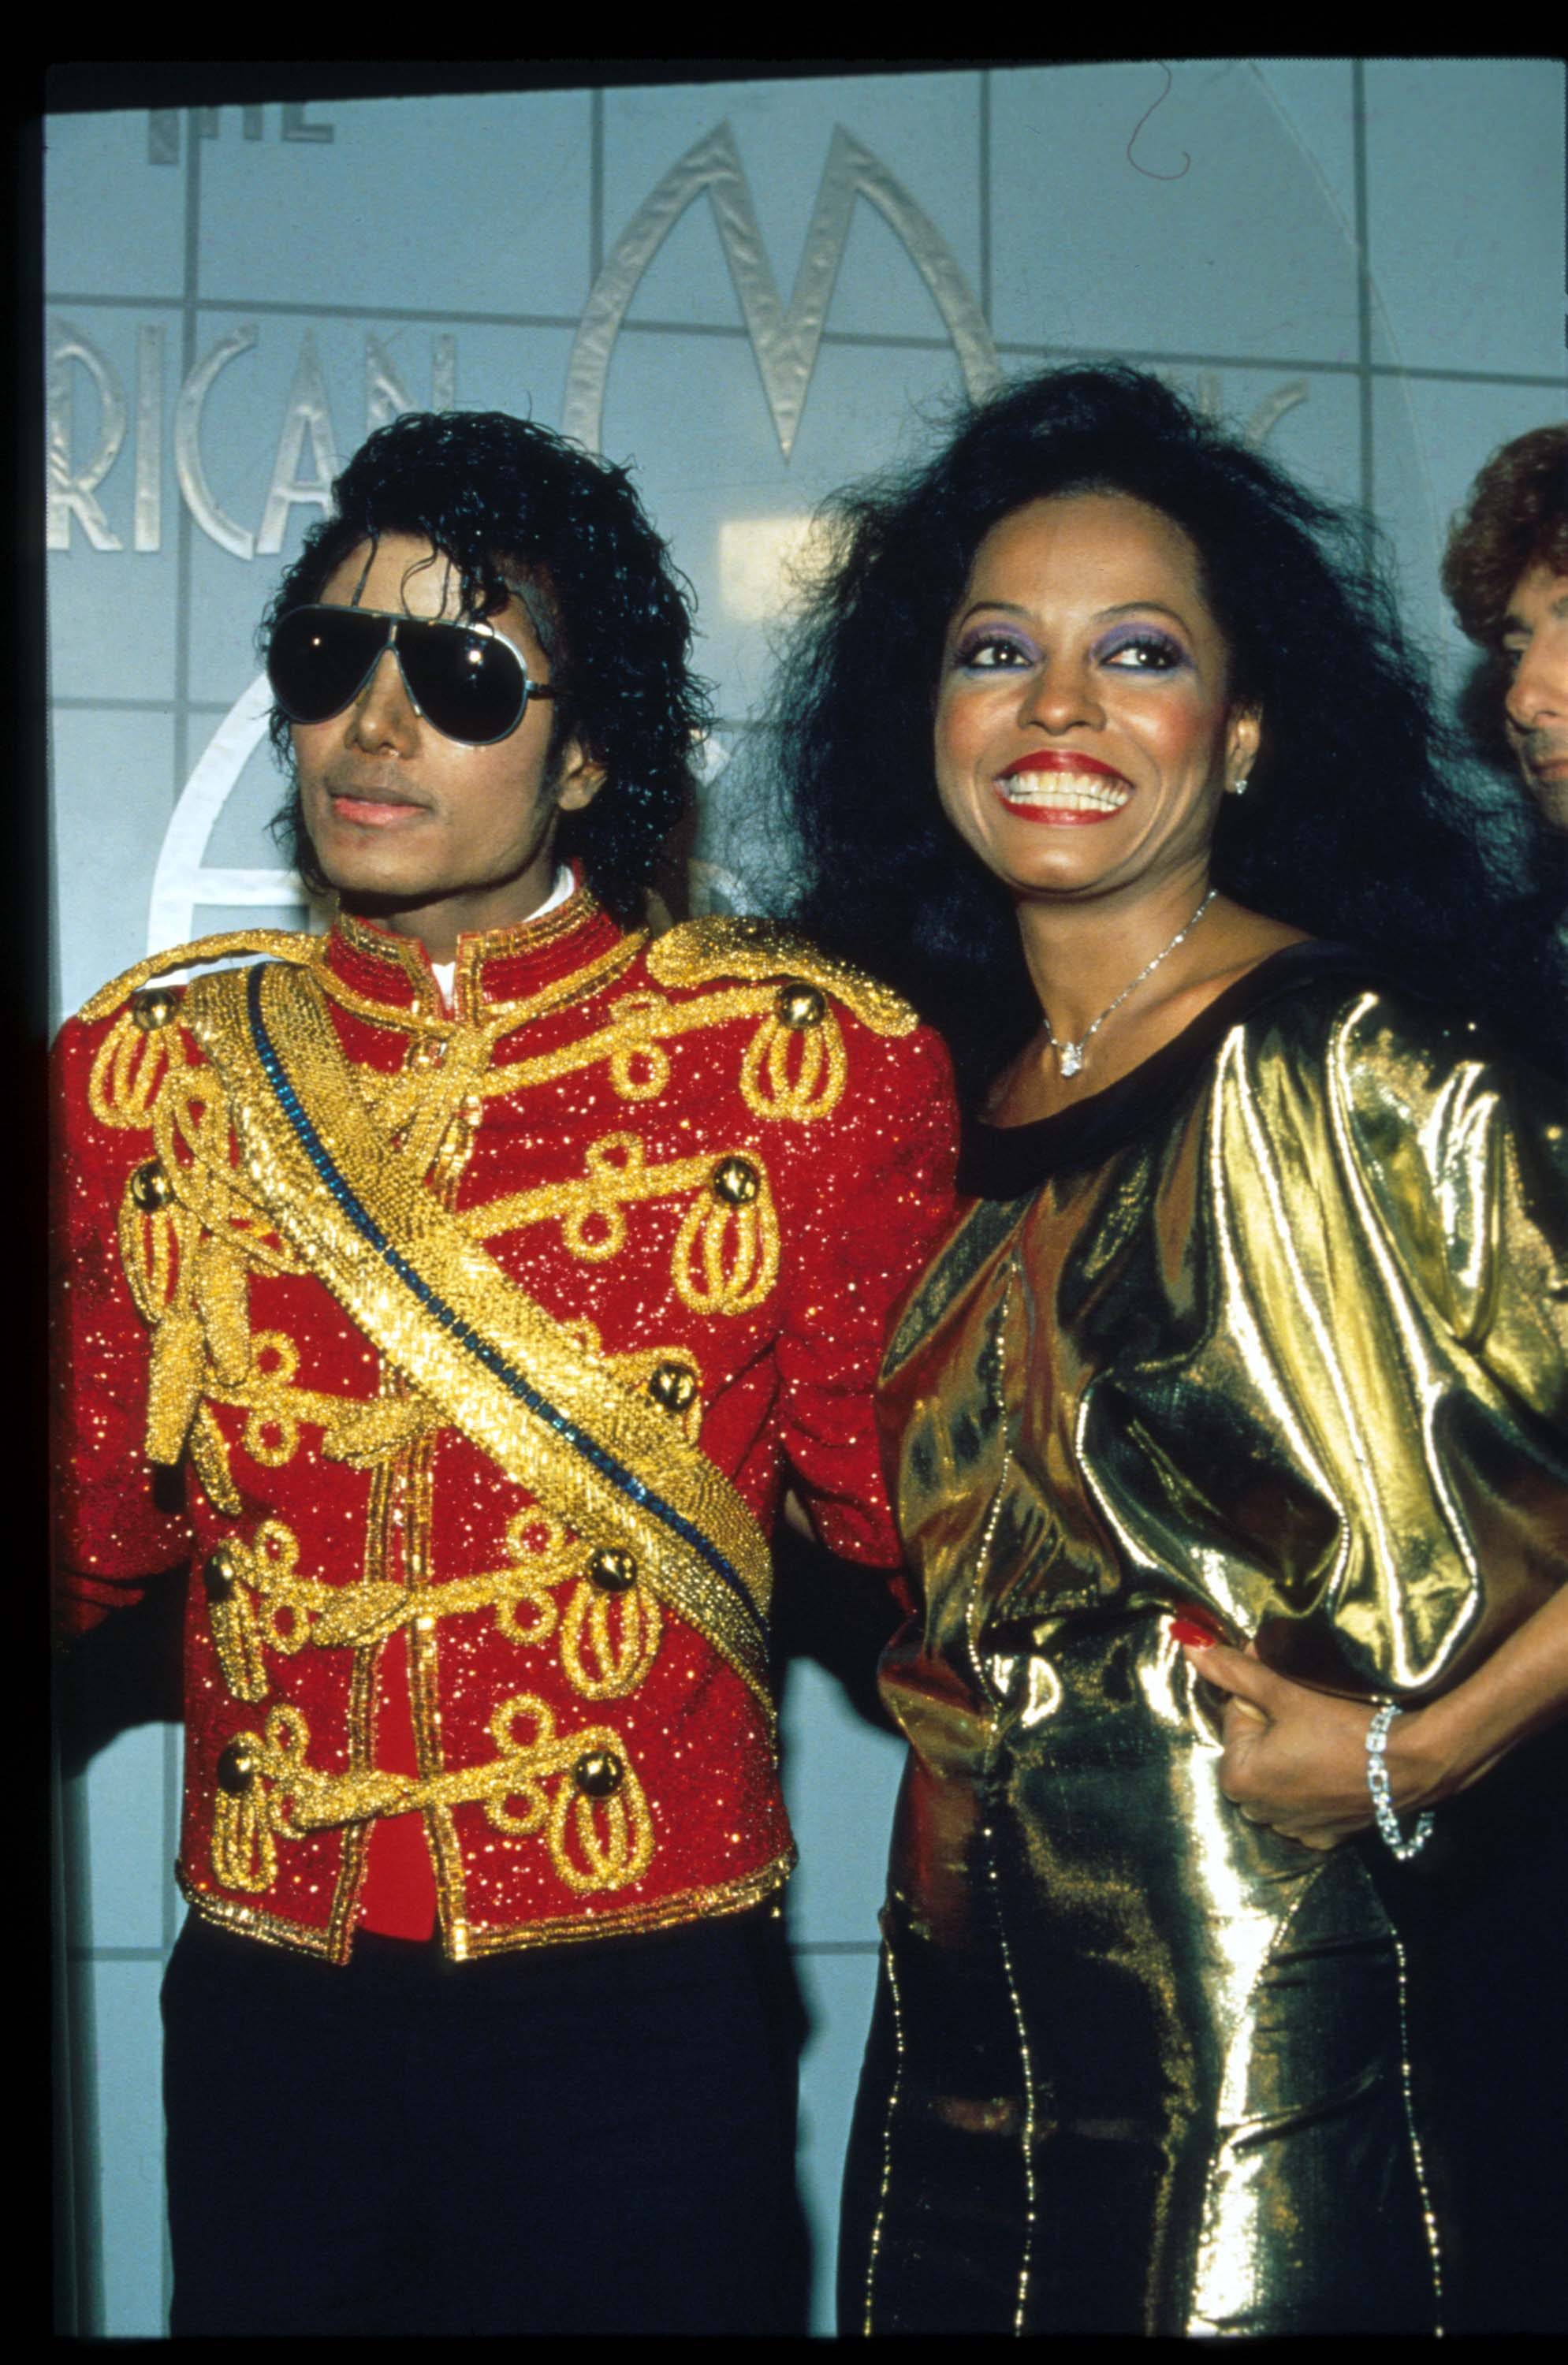 Diana Ross in support of Michael Jackson who received eight awards at the American Music Awards on January 17, 1984 in Los Angeles, CA. | Source: Getty